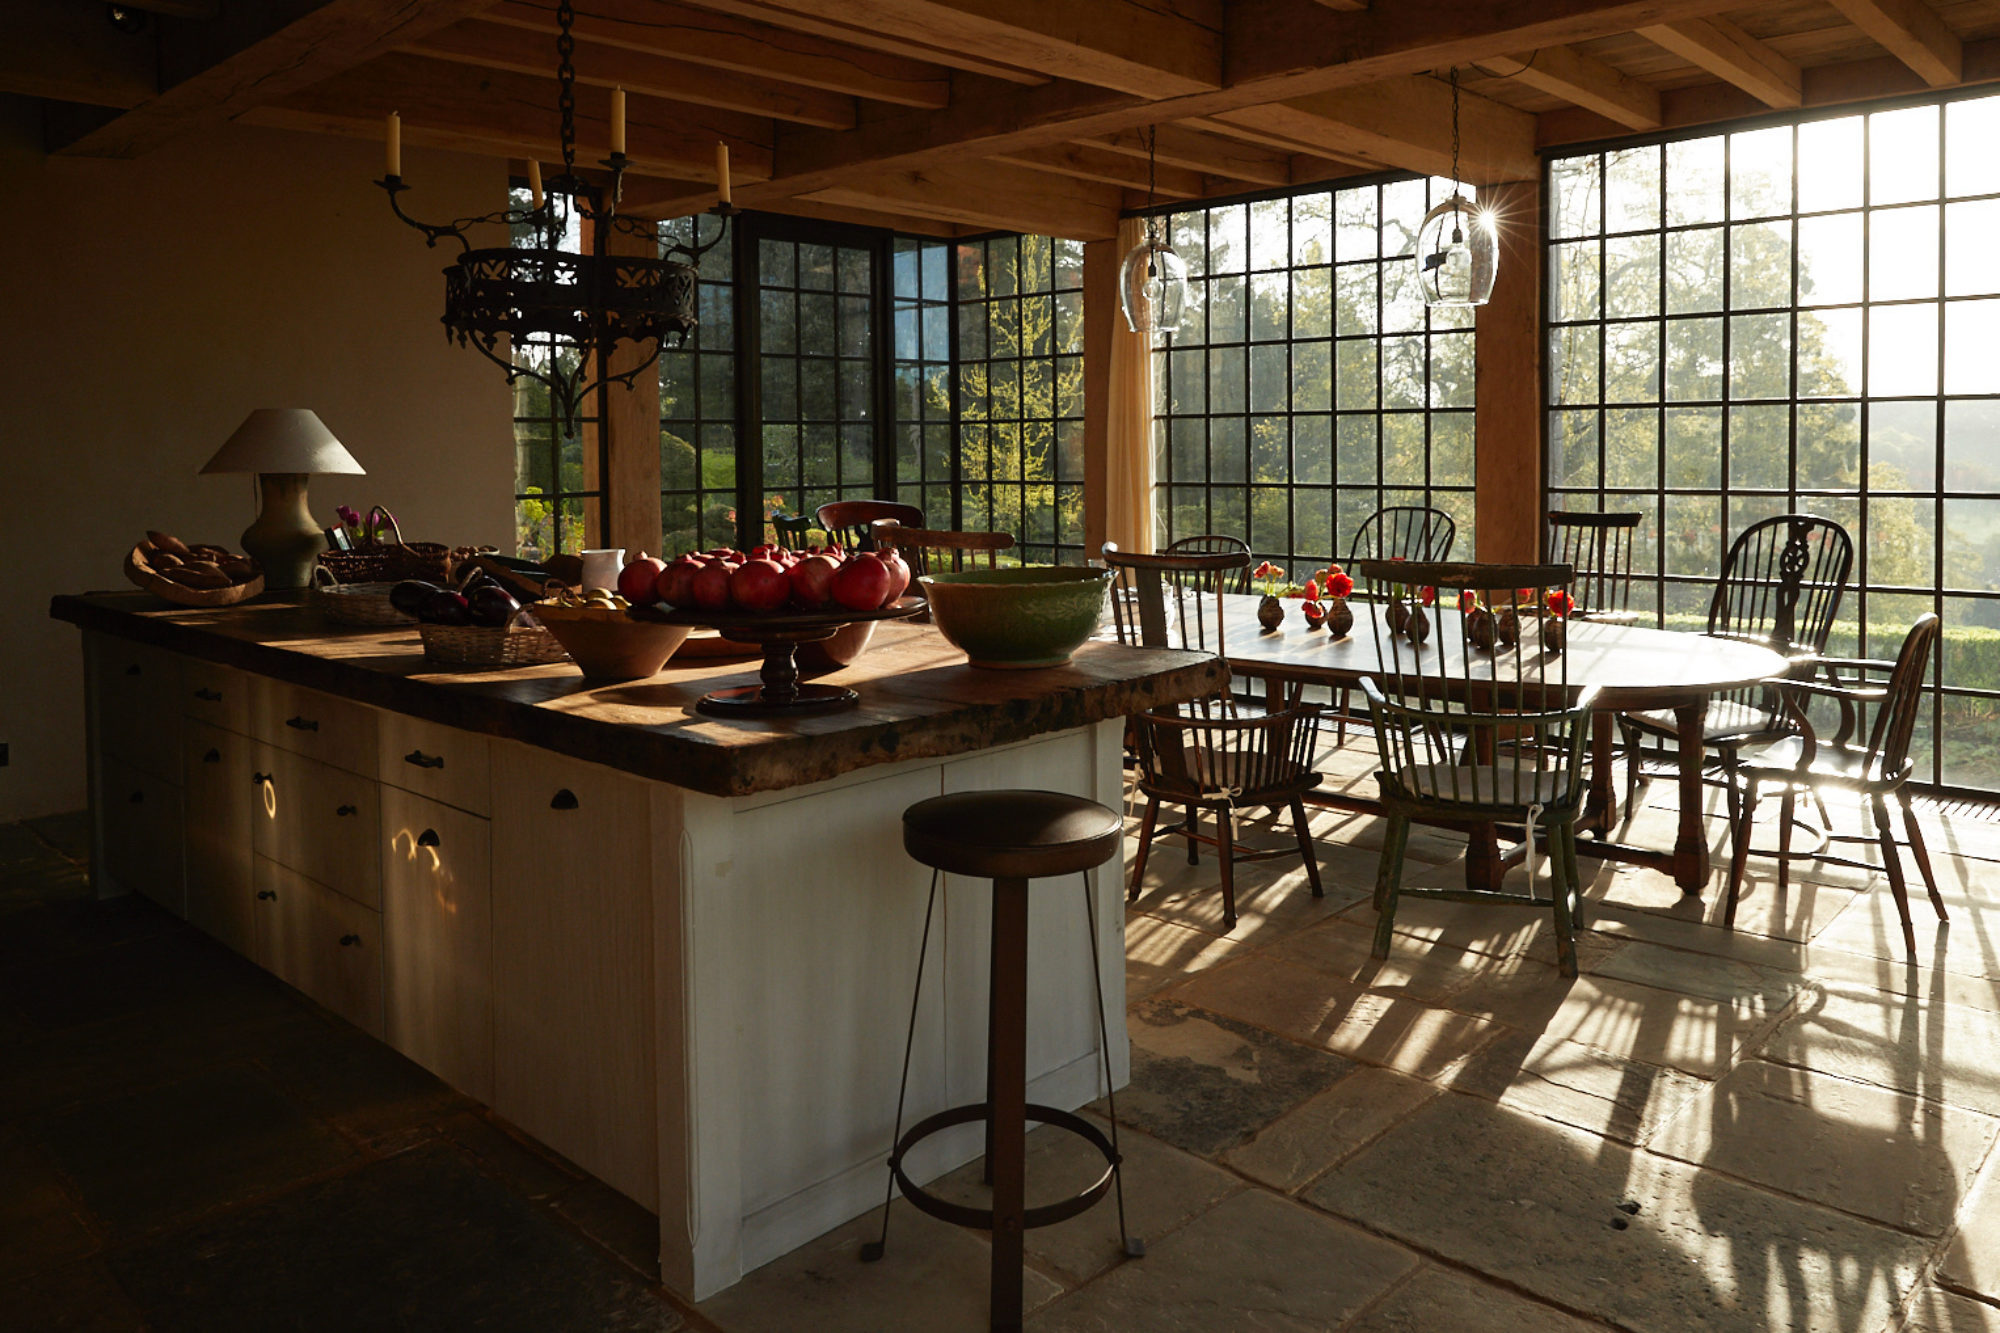 Interior kitchen view with morning sunlight in Surrey